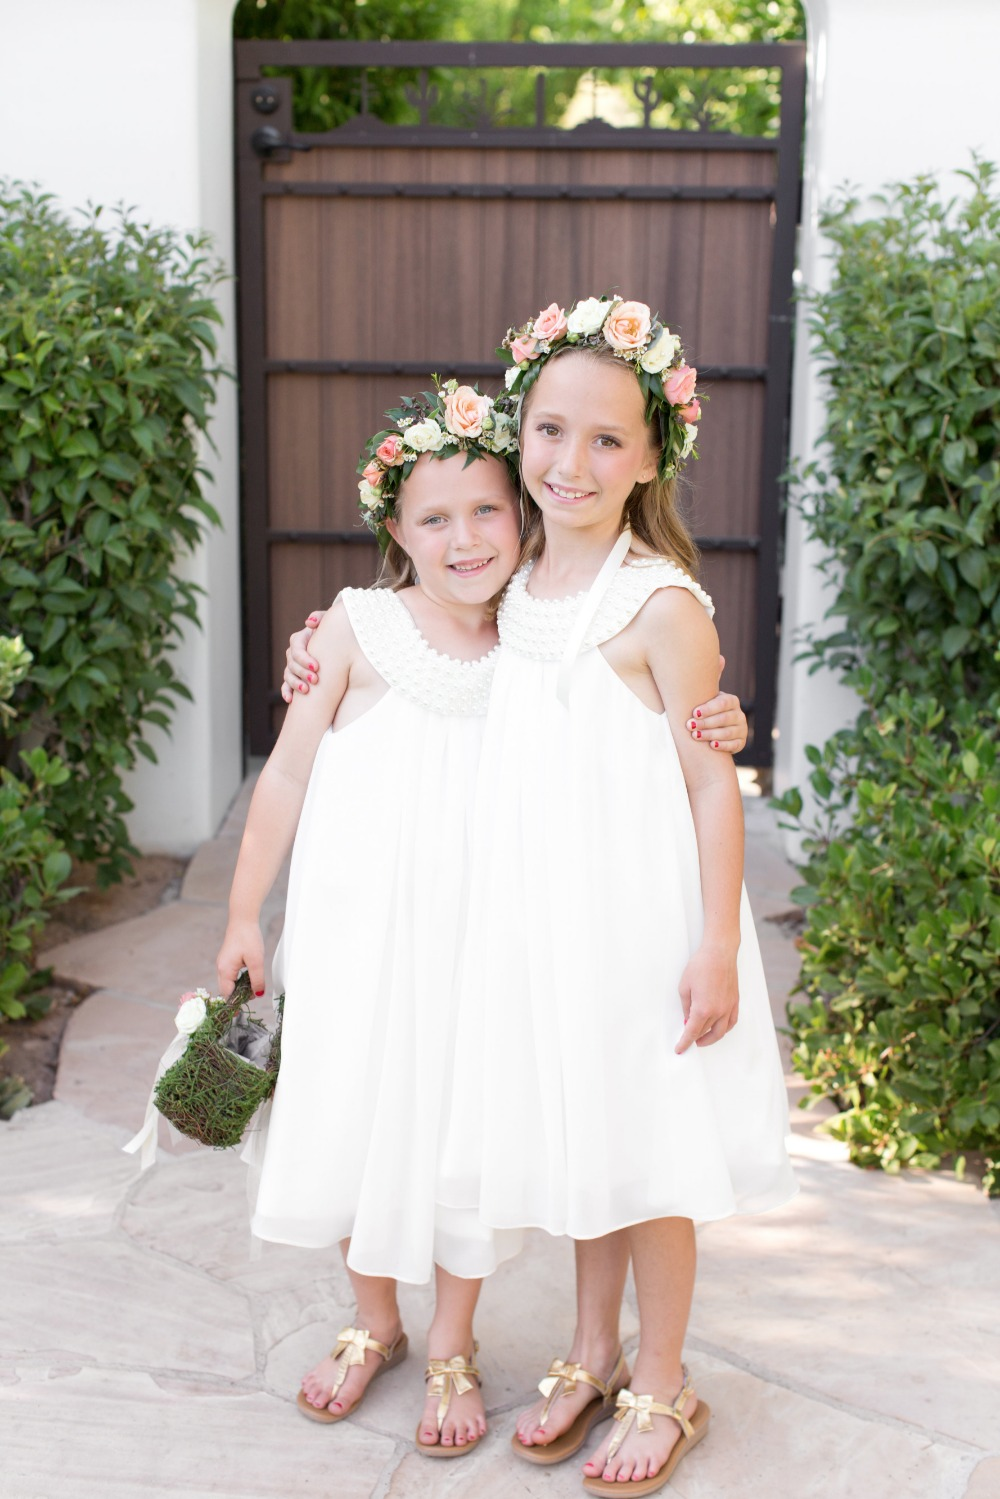 Cute flower girls in white